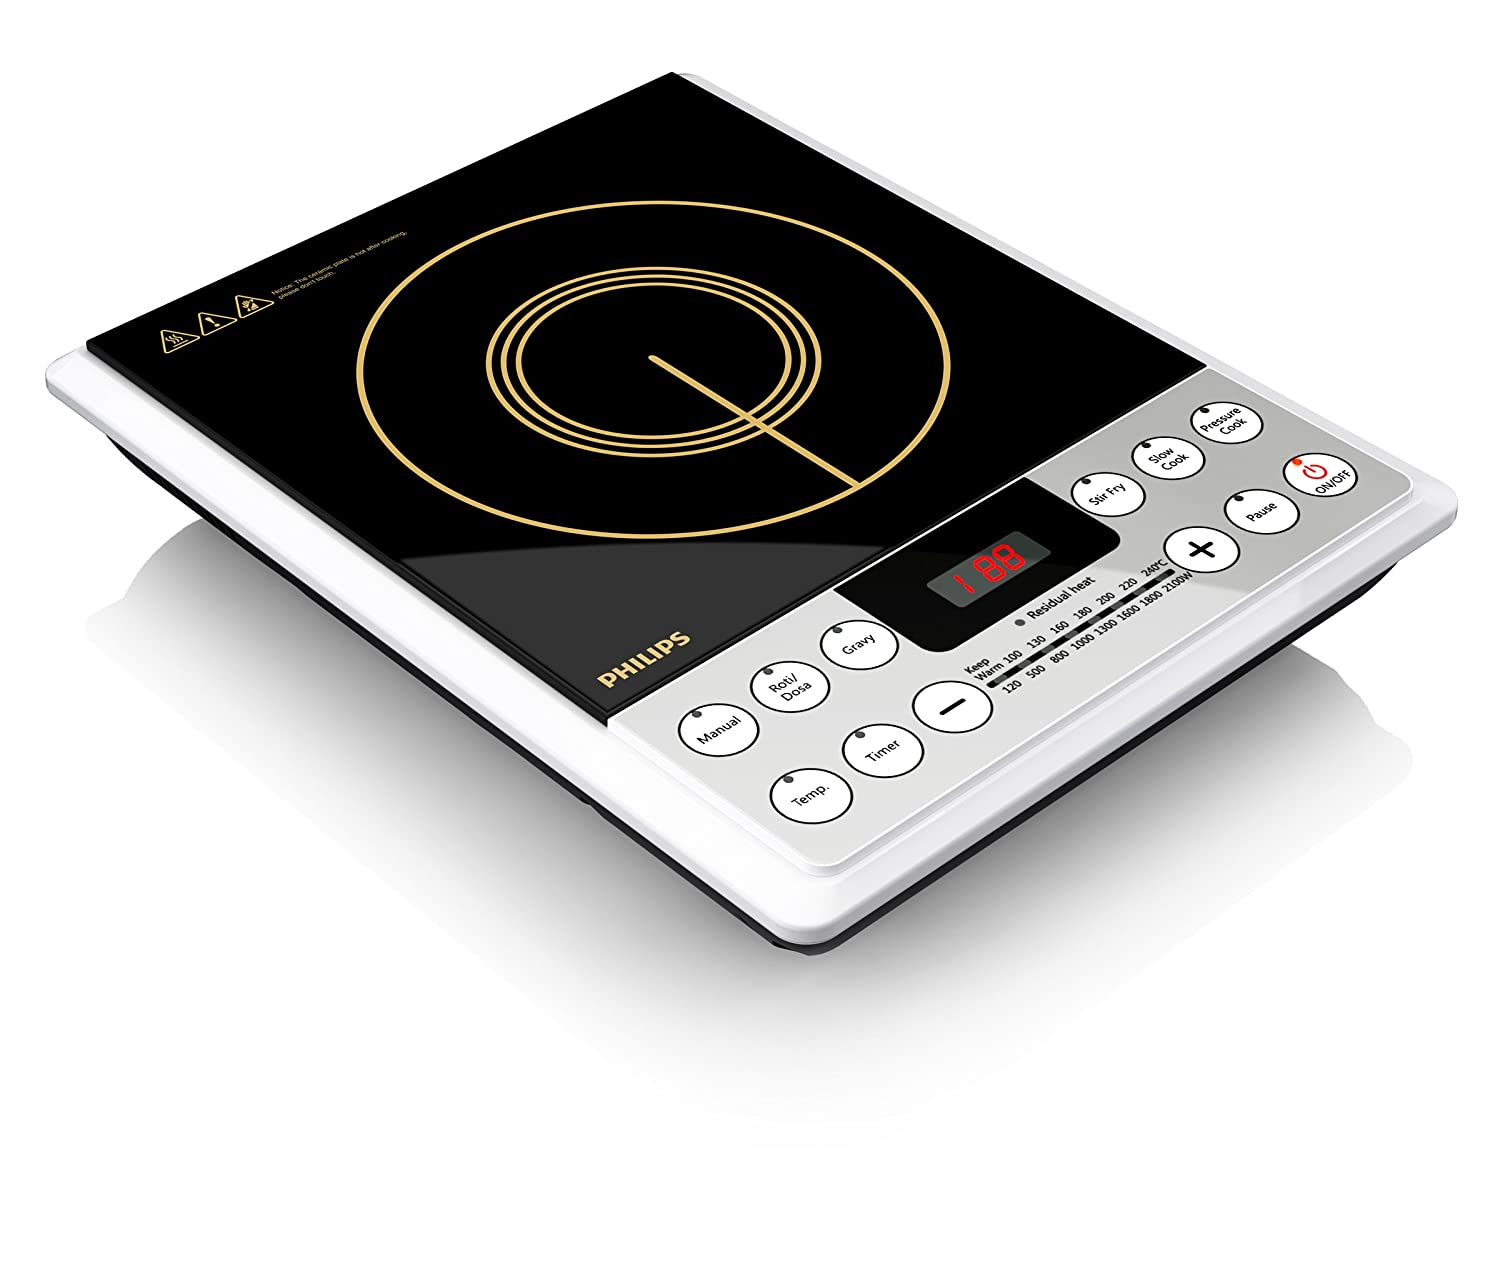 Induction Cooktop Induction Cooktop Comparison Induction Cooktop Price